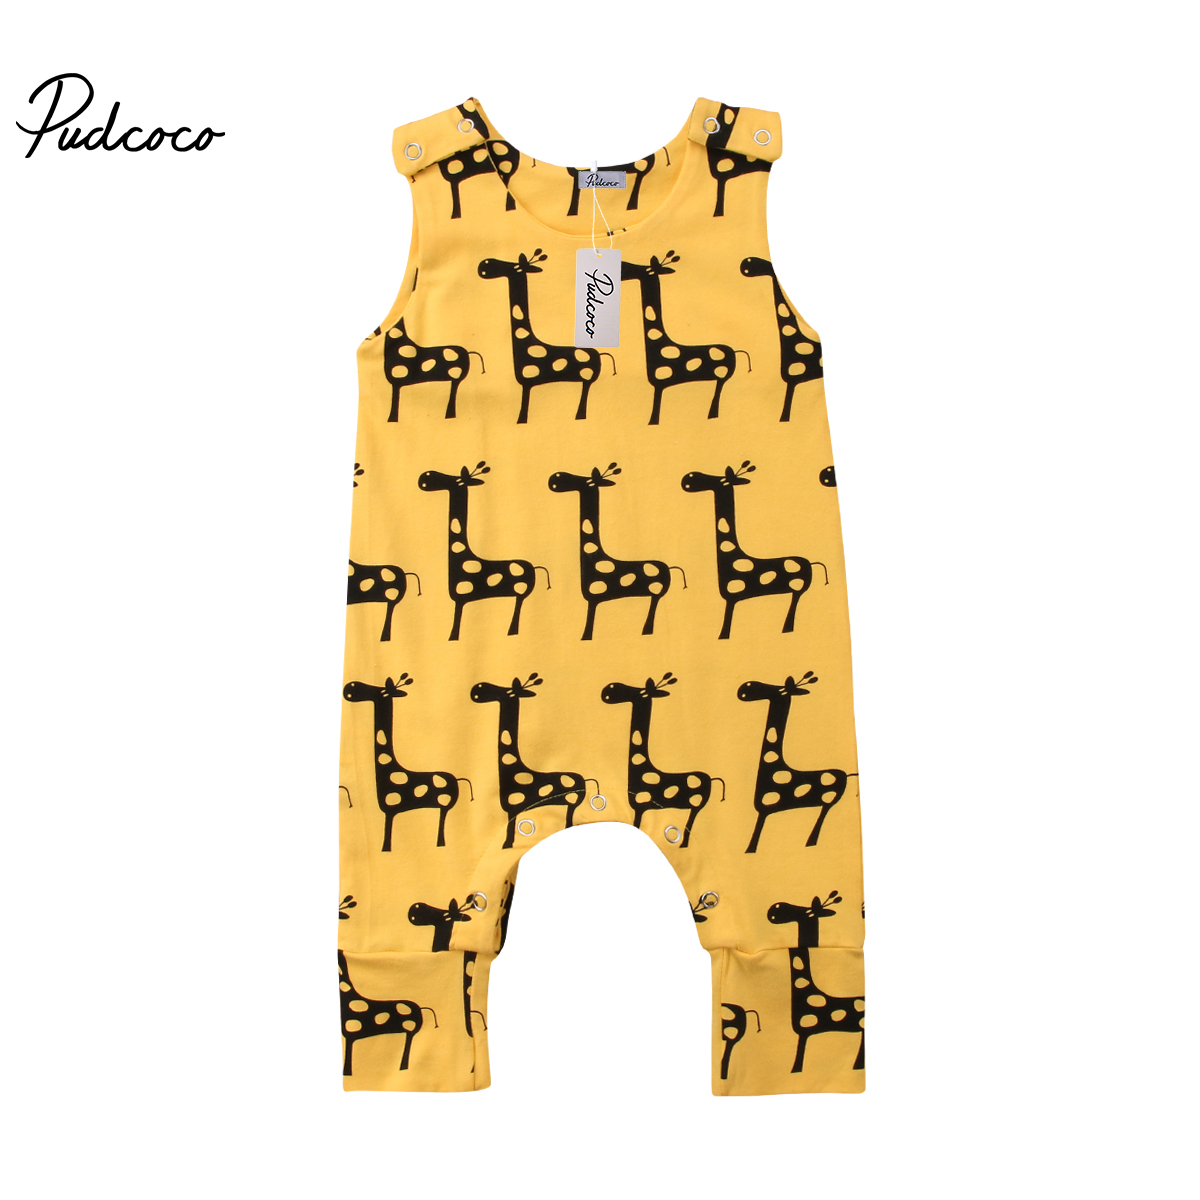 Outfits Jumpsuit Cotton Romper Animal Baby-Boy-Girl Cute Newborn Cartoon Sleeveless Summer